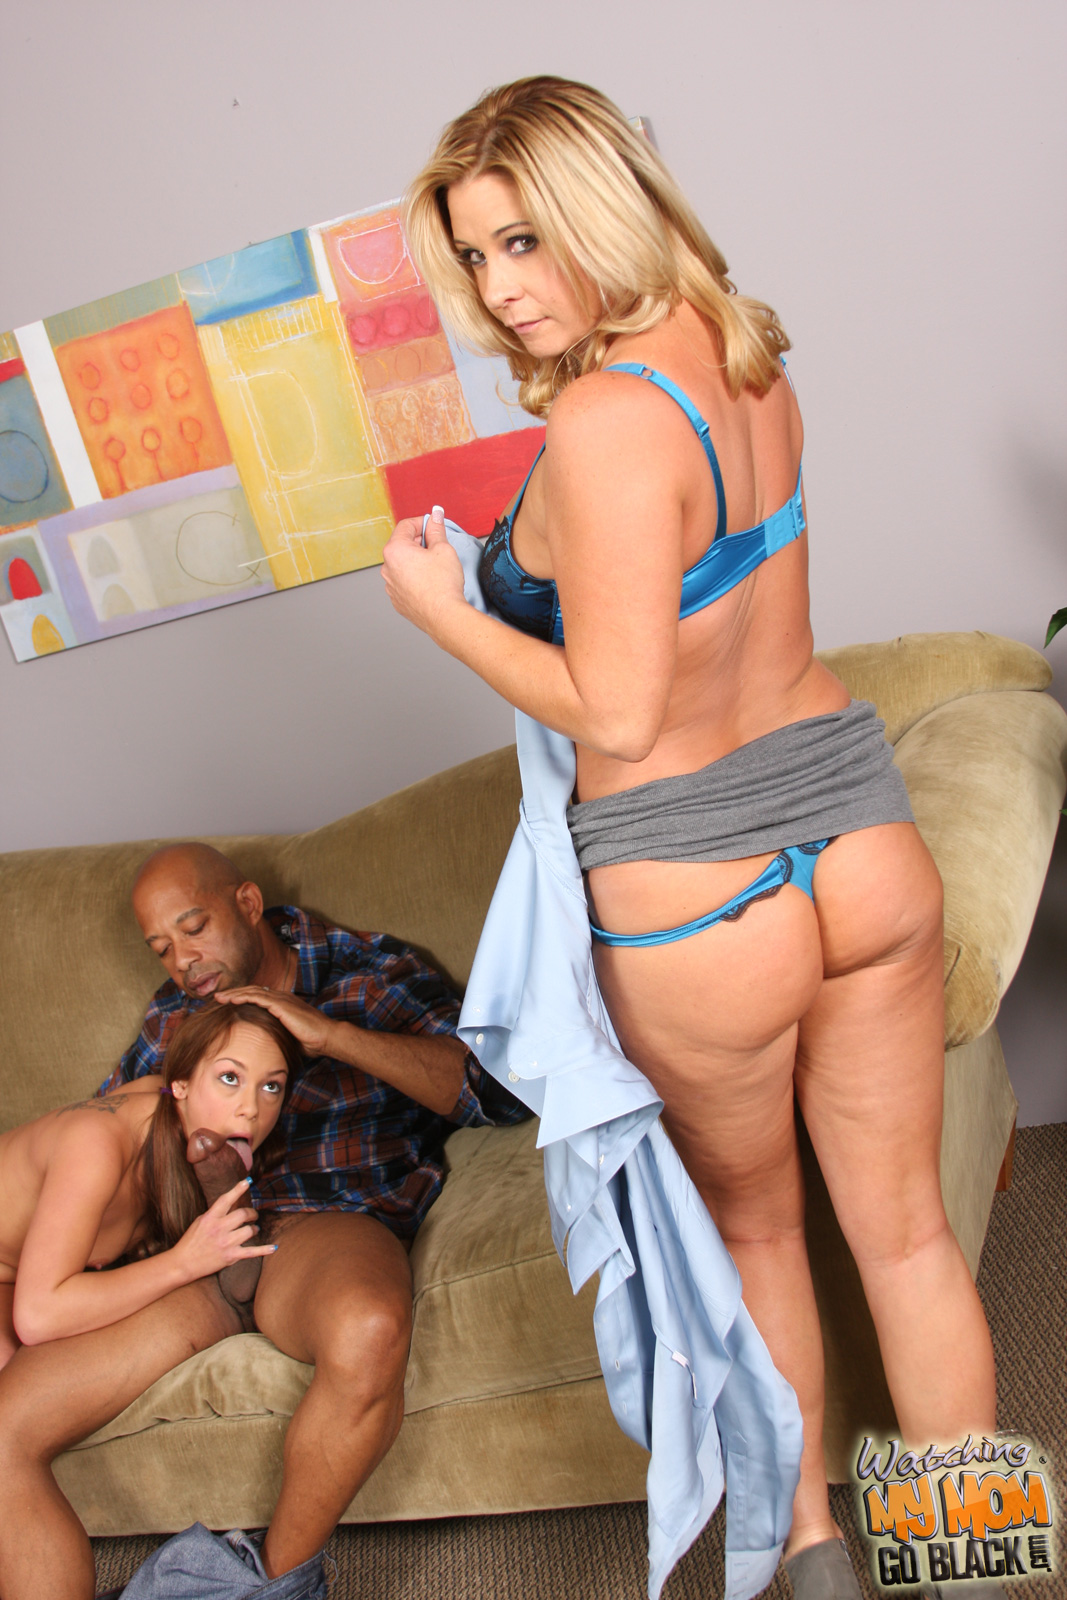 galleries watchingmymomgoblack content phyllisha anne pic 15